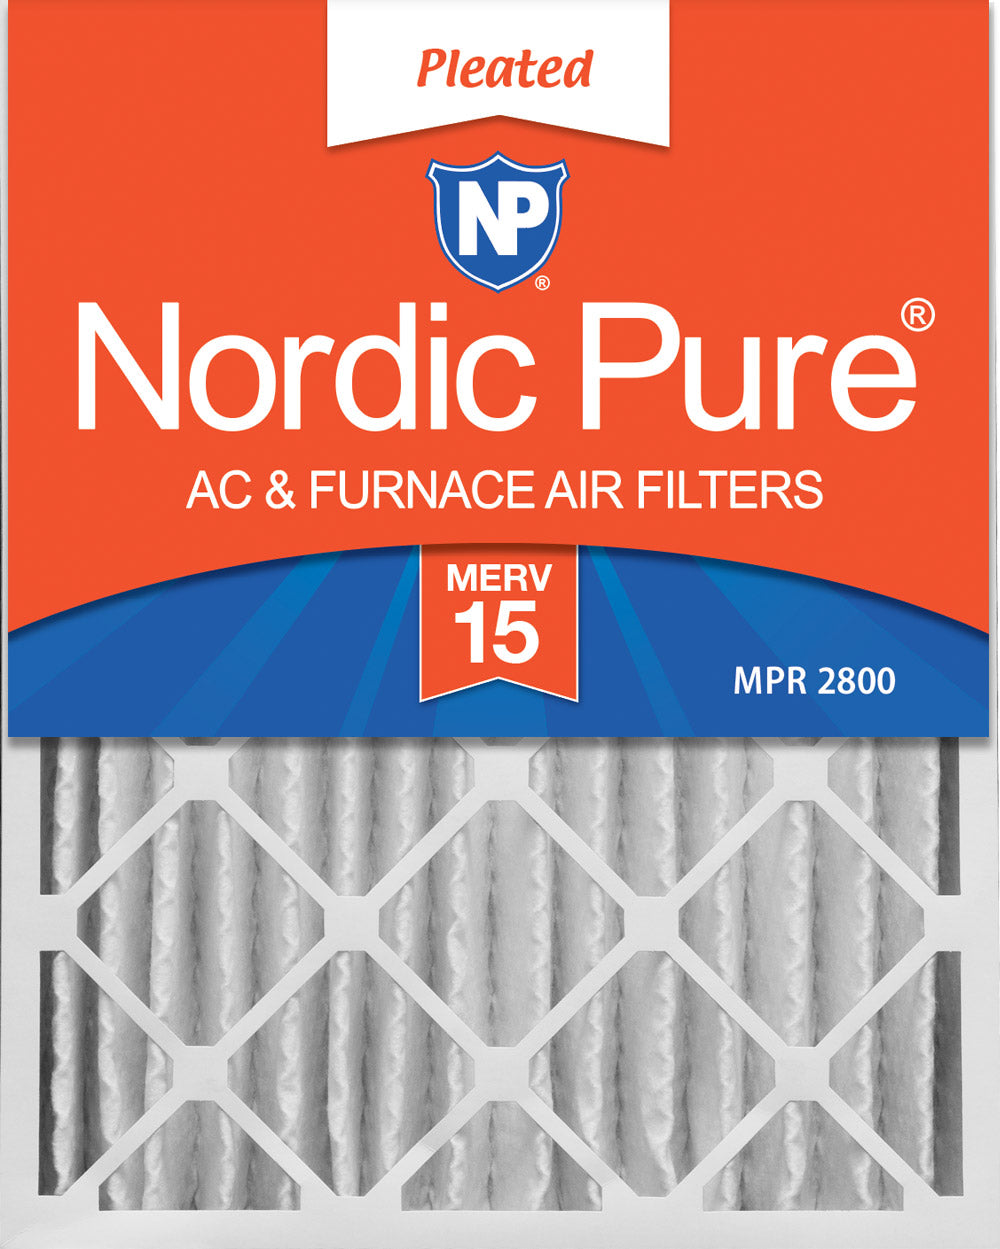 20x25x4 (3 5/8) Pleated MERV 15 Air Filters 1 Pack